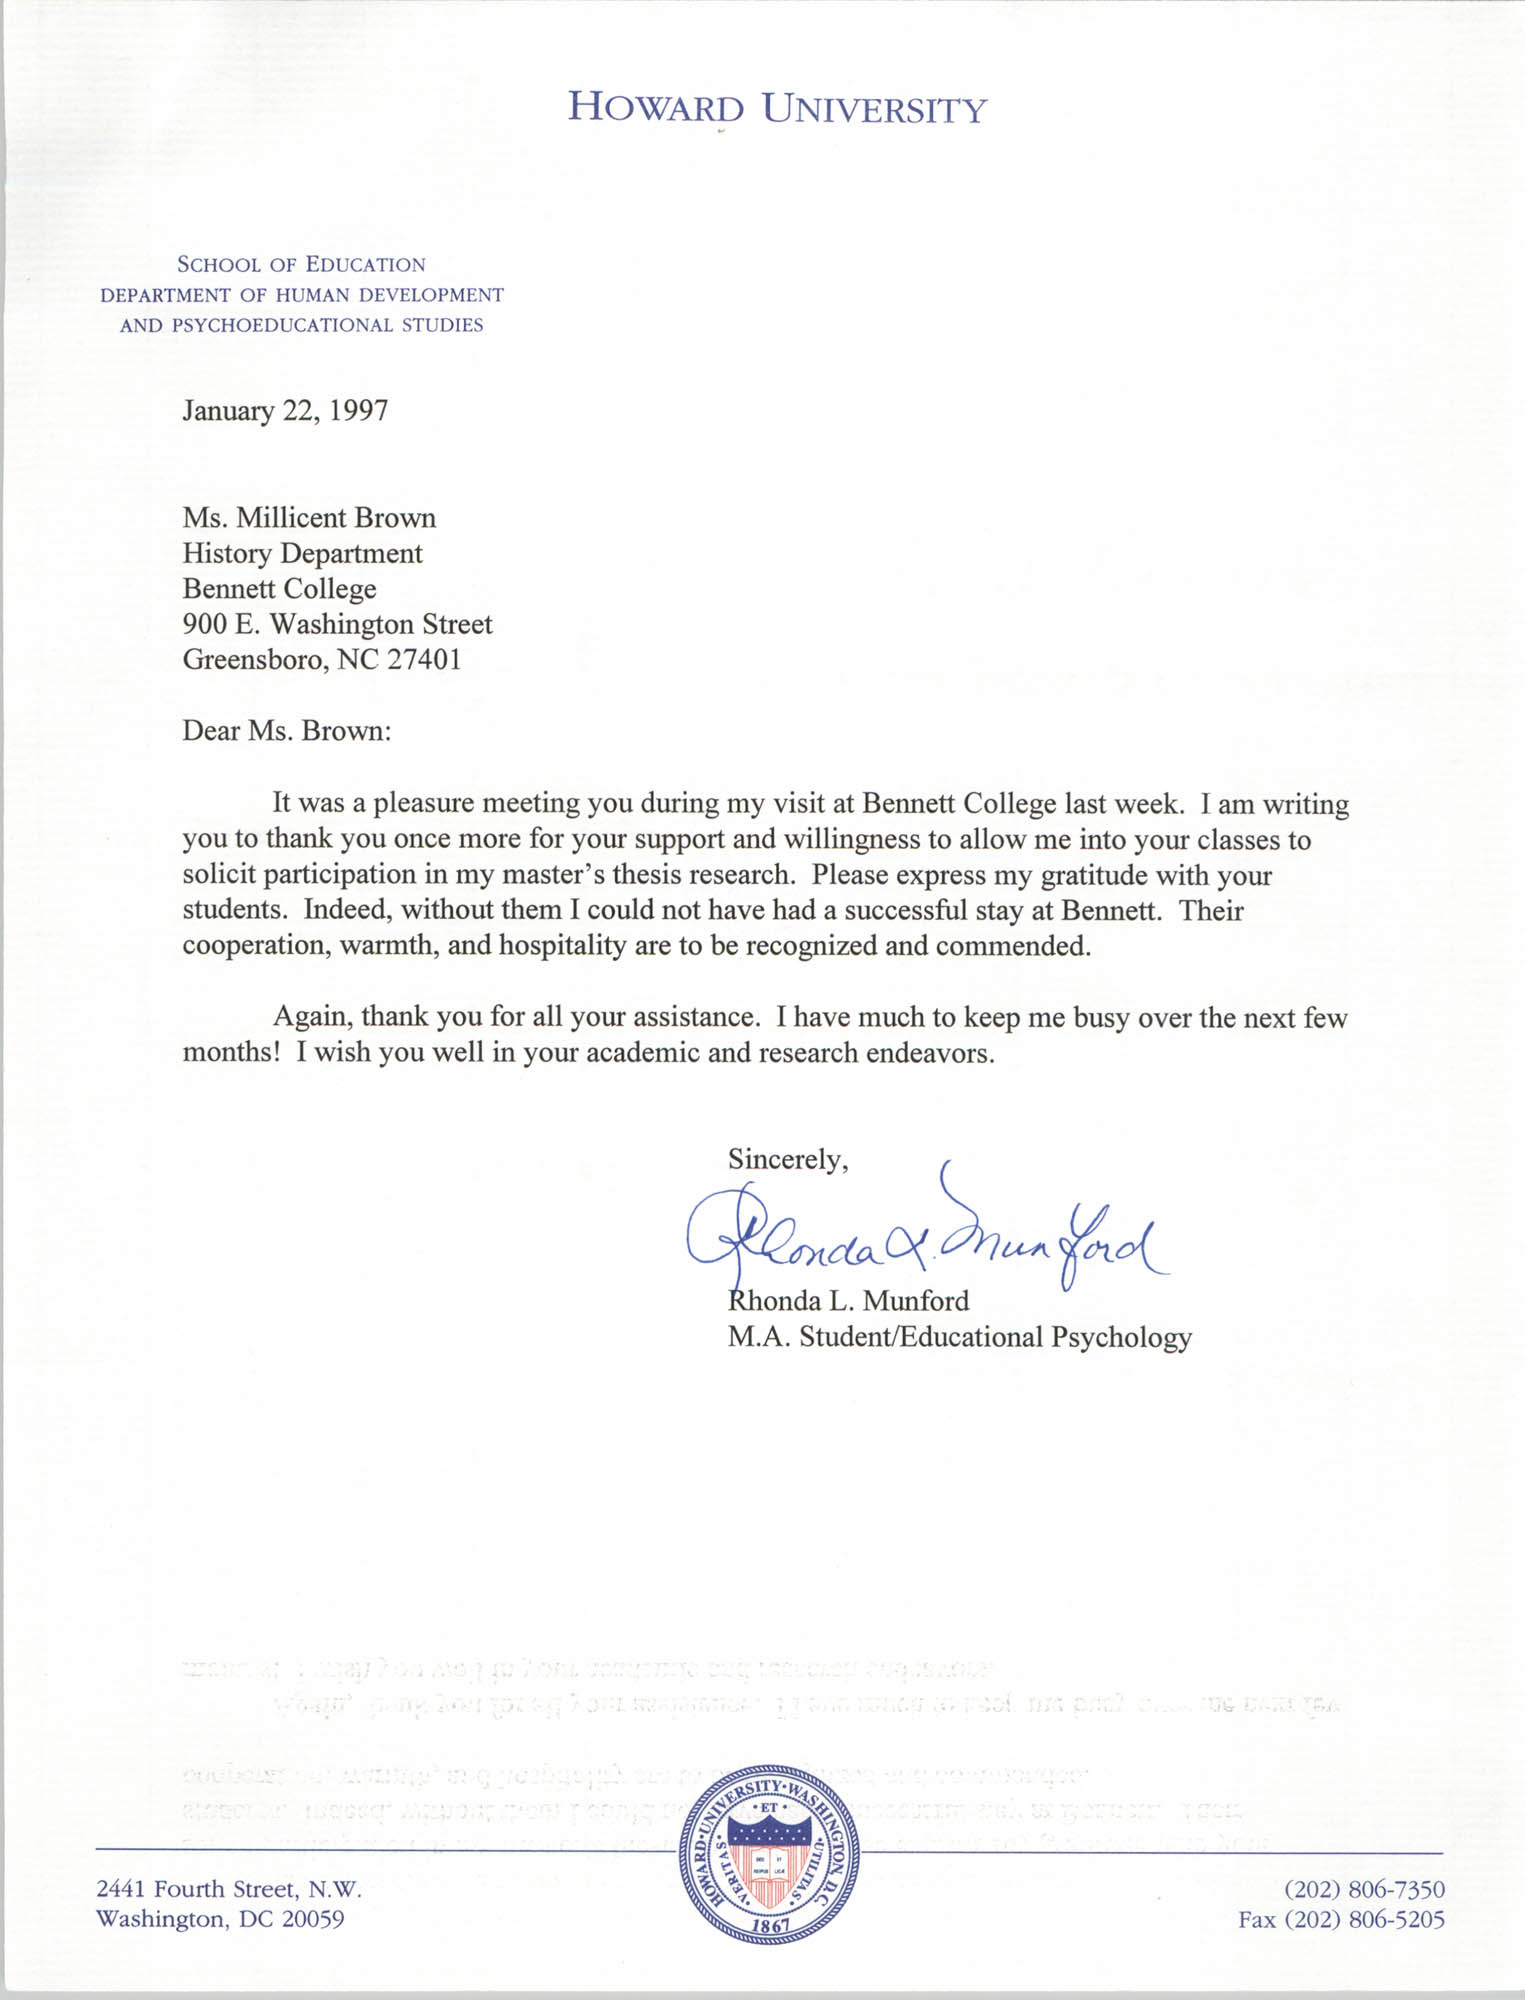 Letter from Rhonda L. Munford to Millicent Brown, January 22, 1997